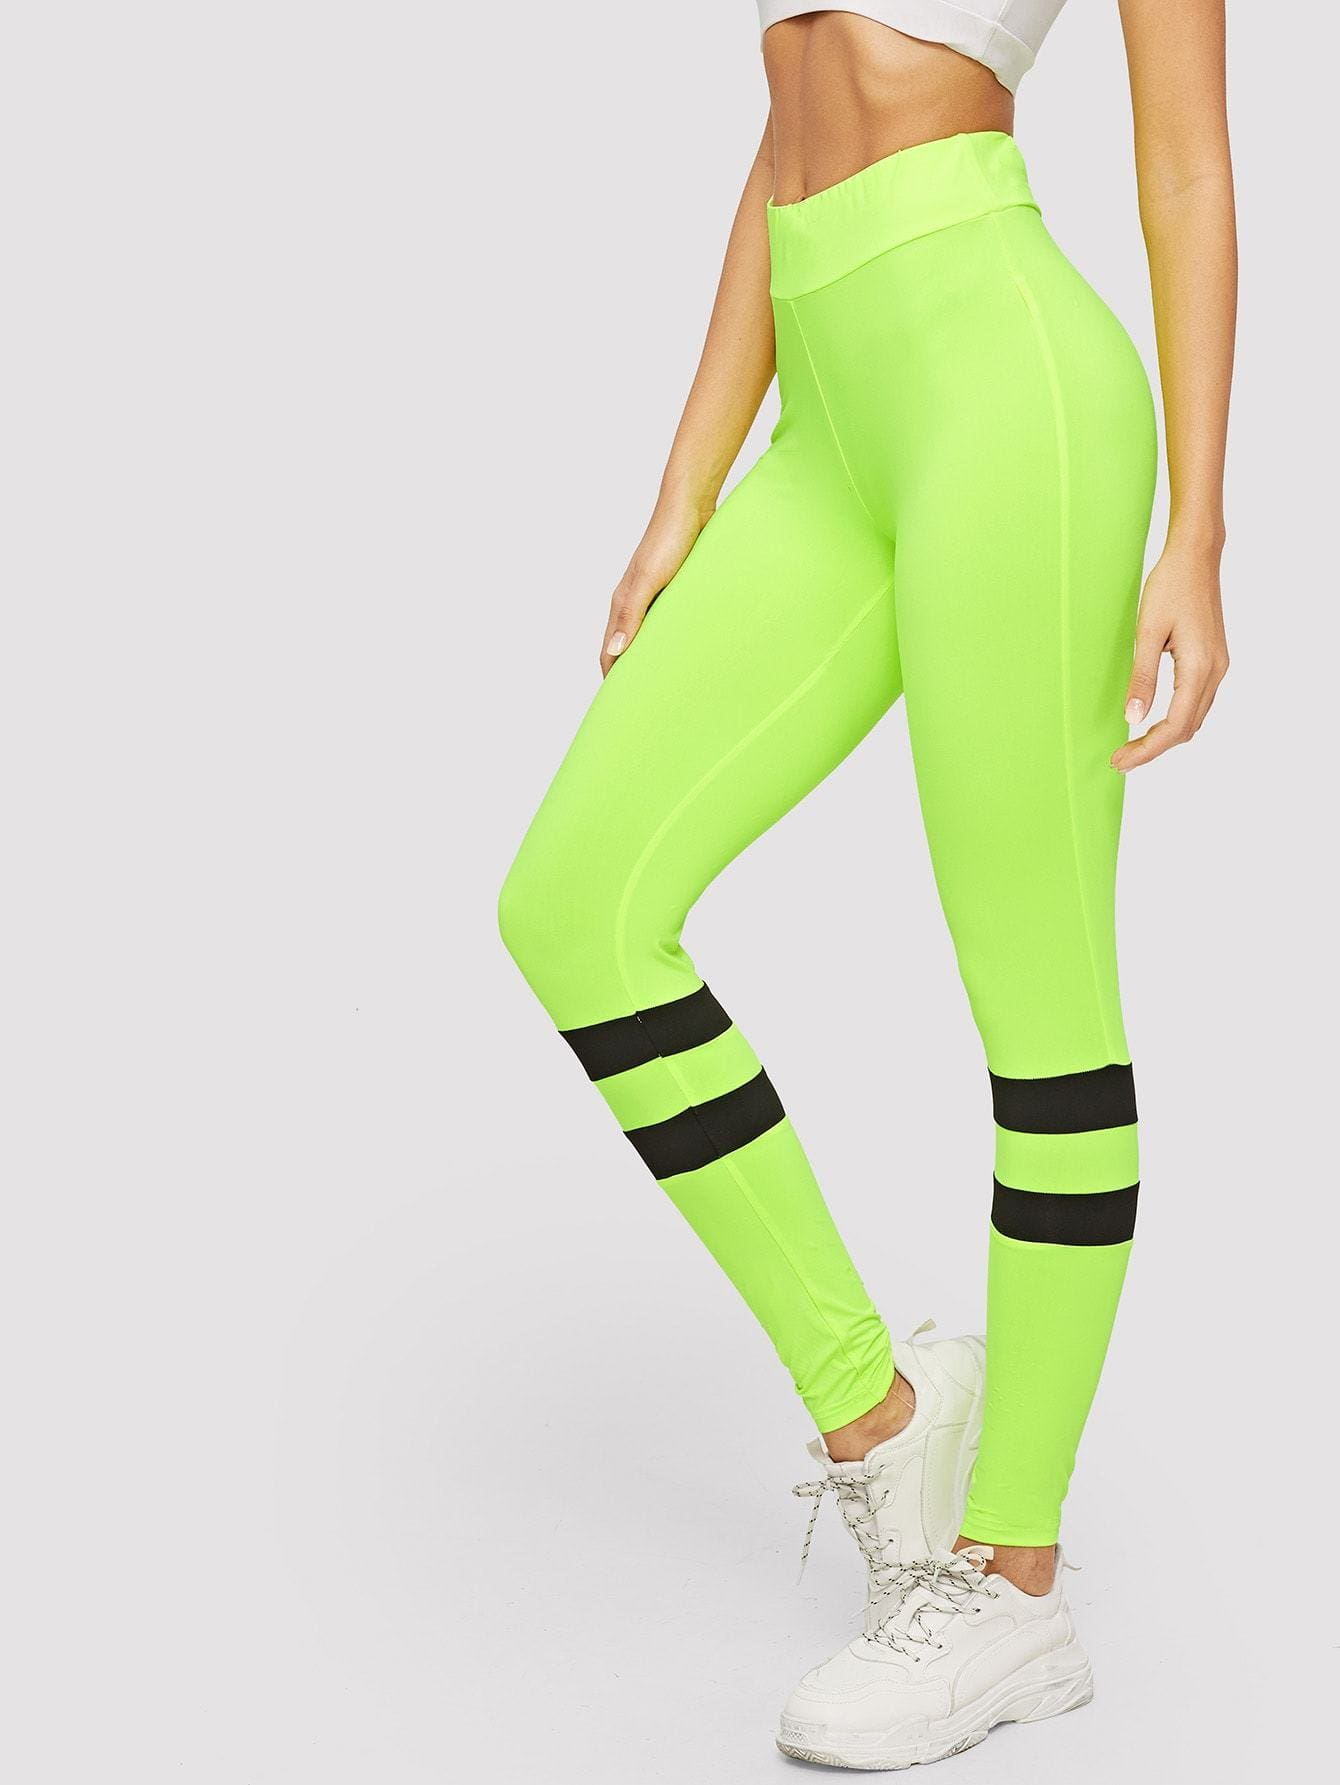 Wide Waistband Striped Neon Leggings - Fittness Leggings